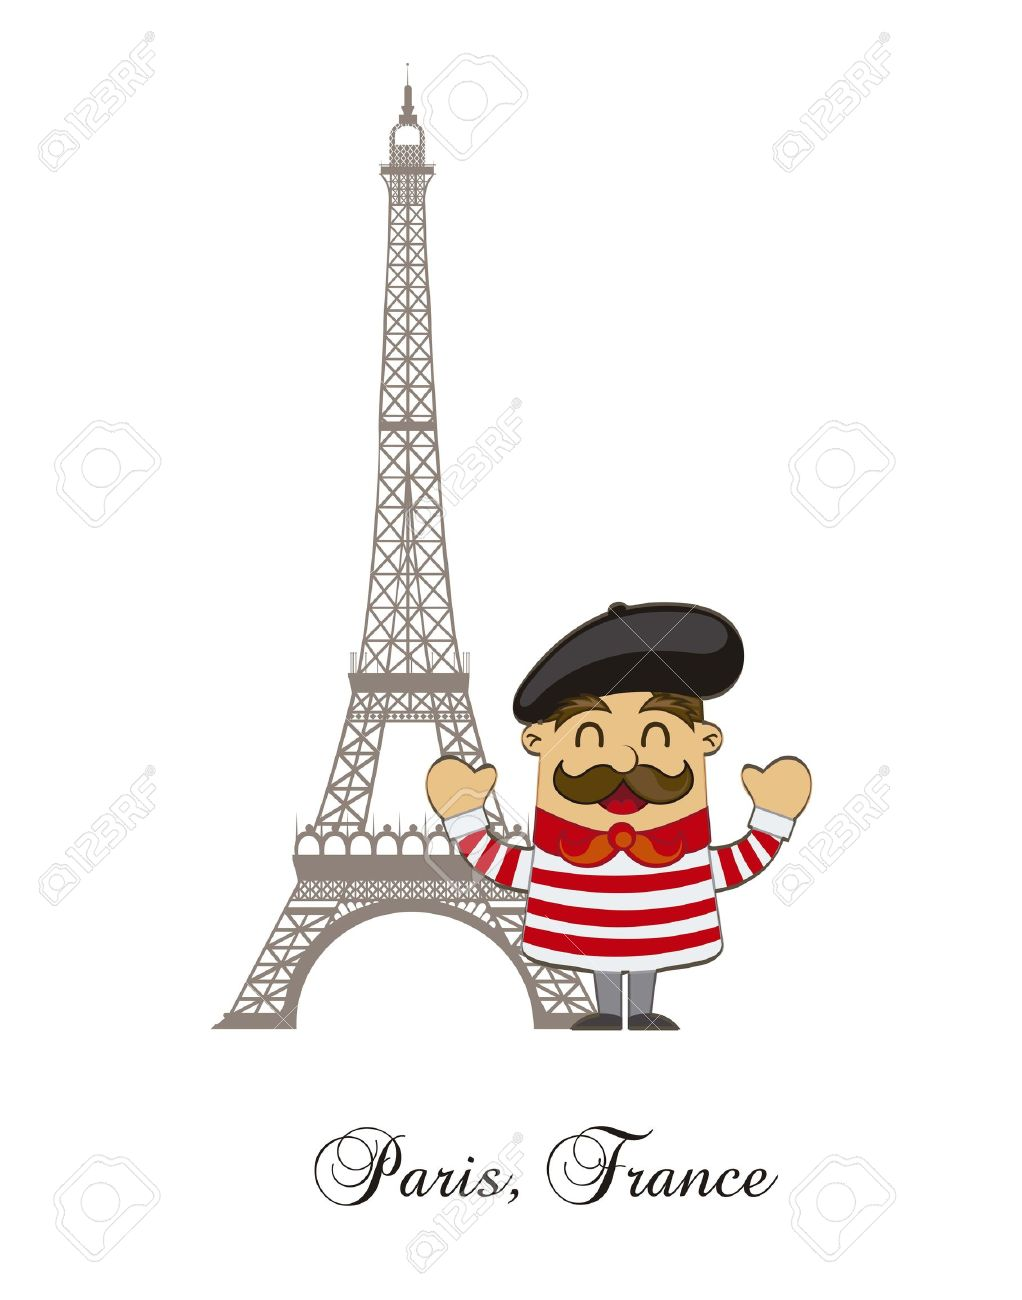 Cartoon French With Tower Eiffel Over White Background Vector Royalty Free Cliparts Vectors And Stock Illustration Image 14944401